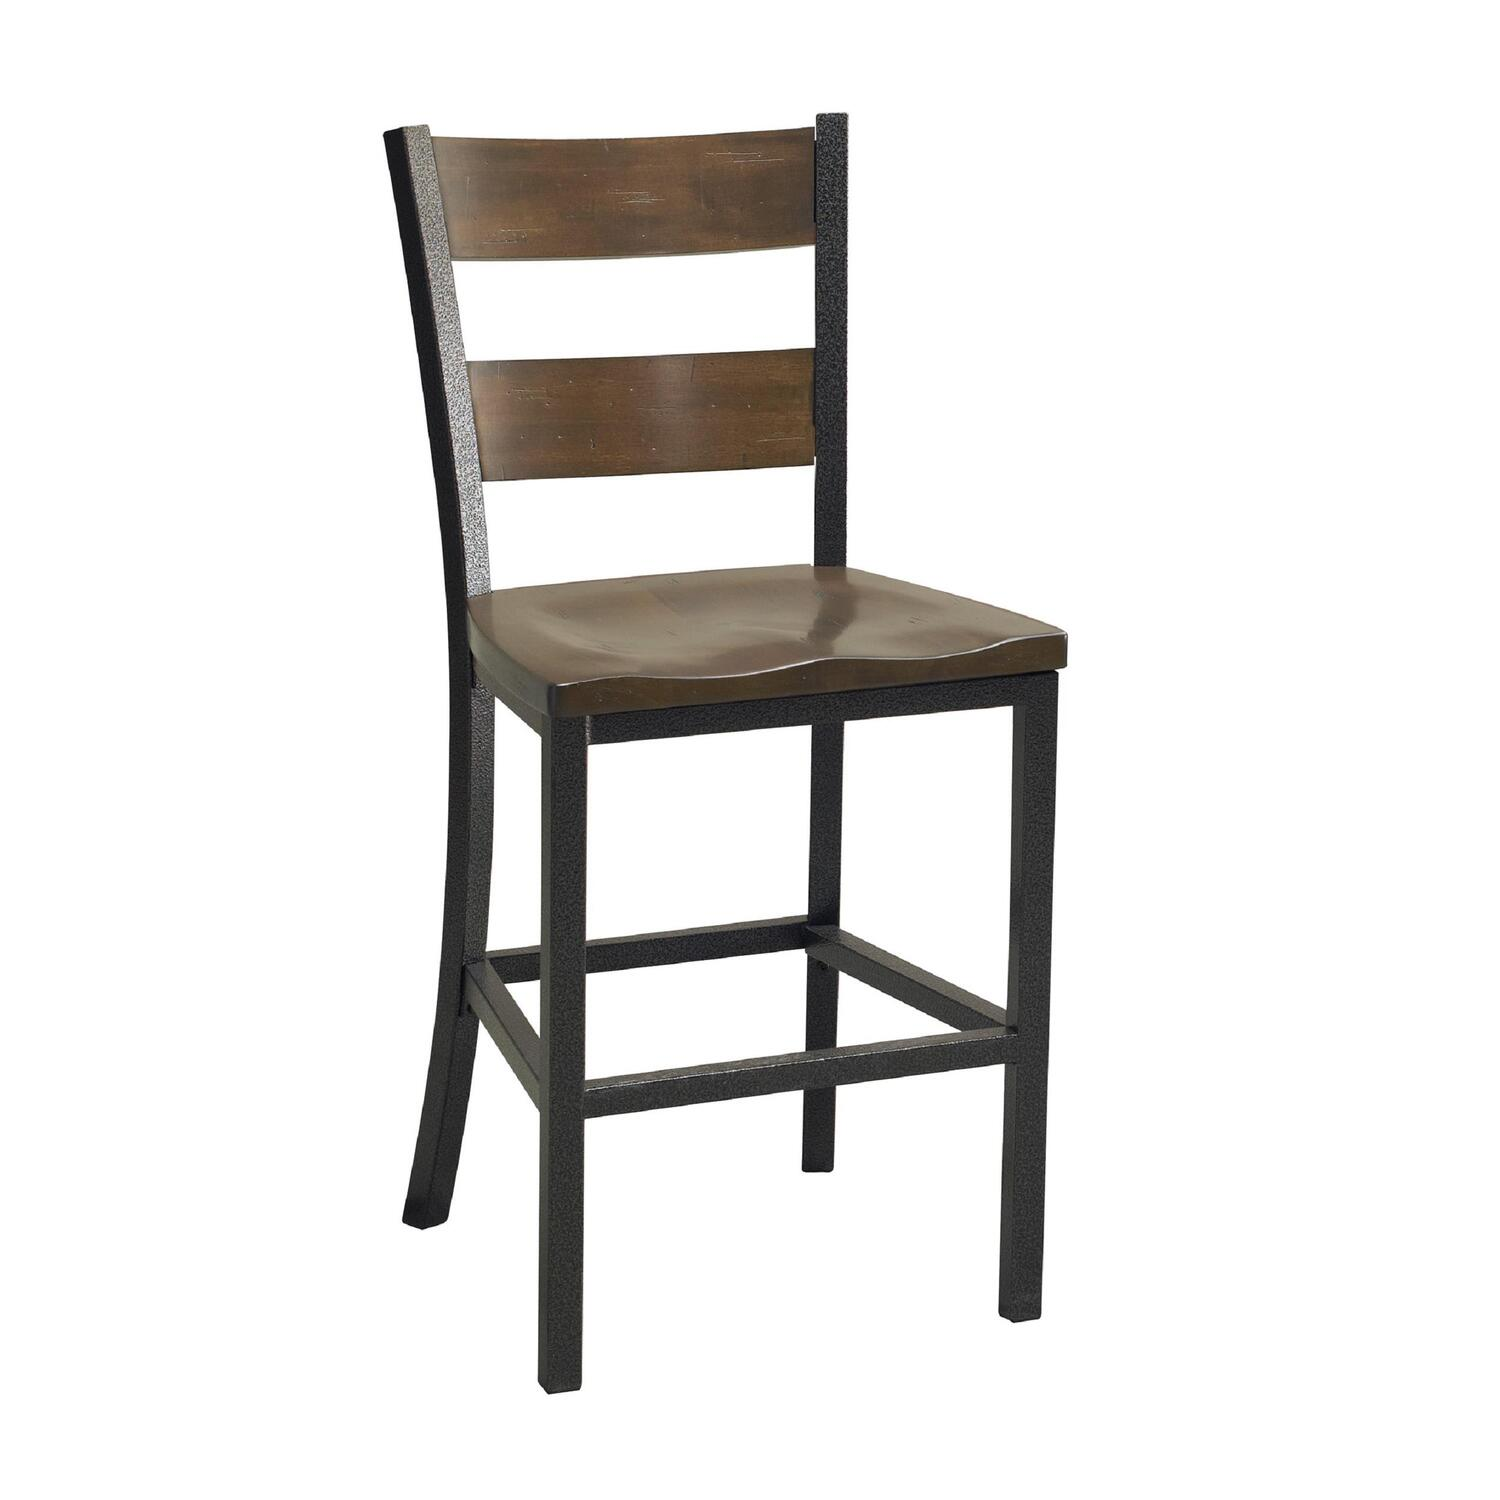 Cabin Creek Bar Stool 186 99 Ojcommerce